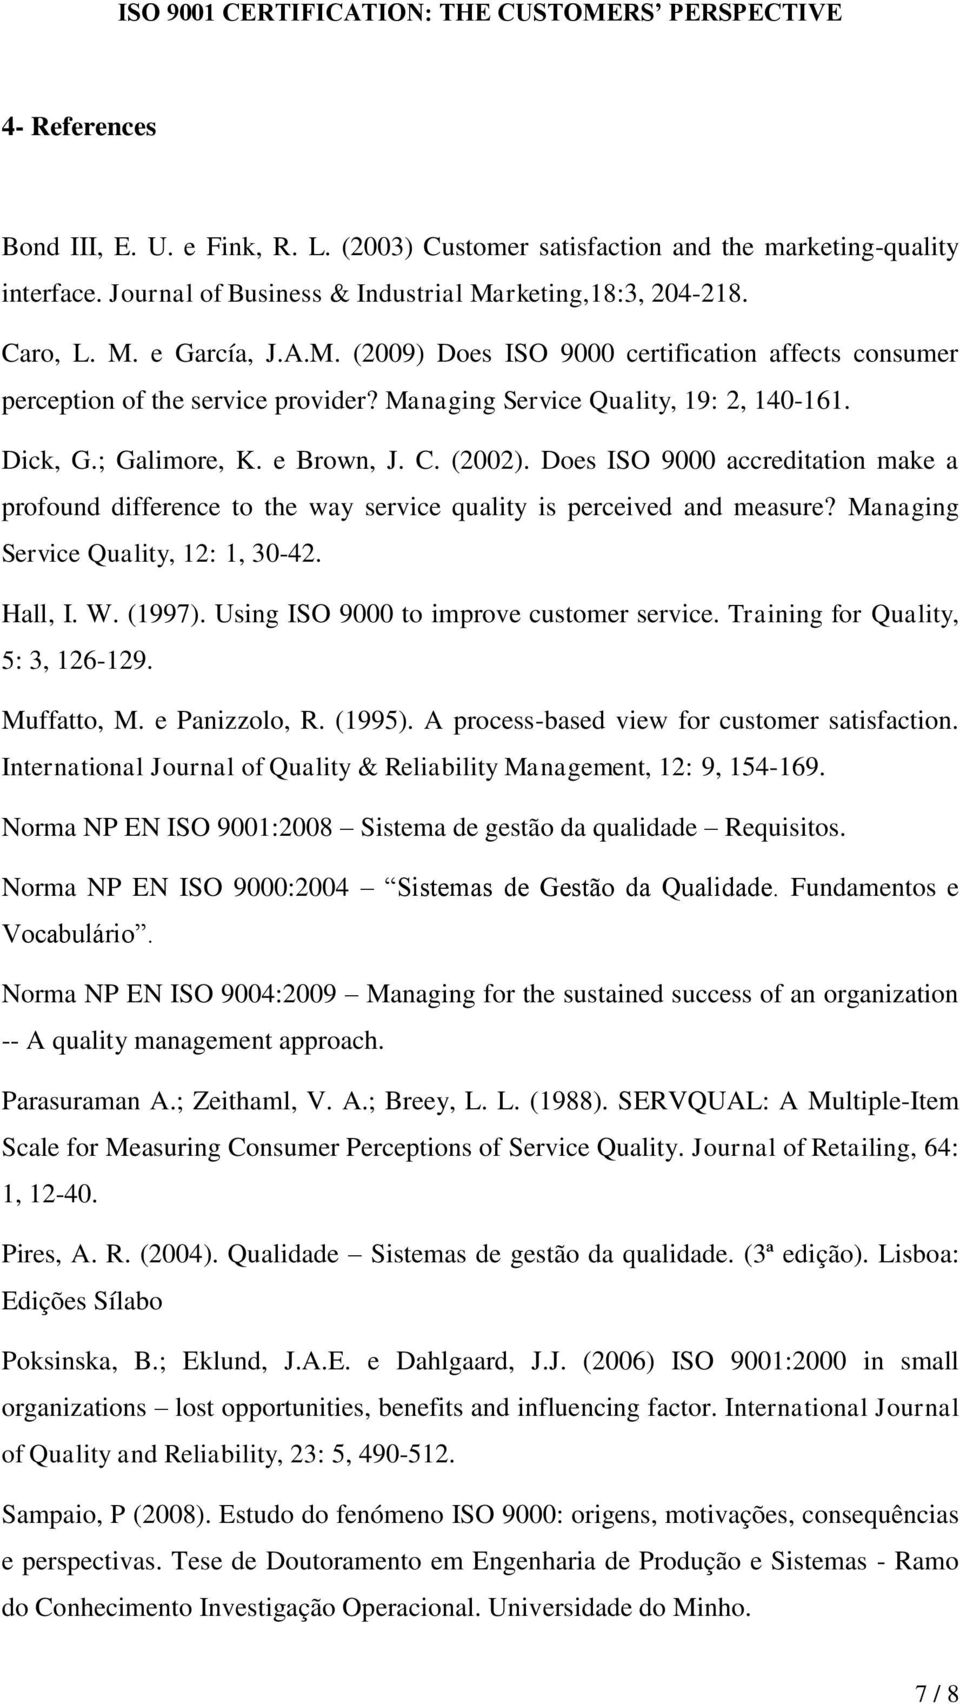 ; Galimore, K. e Brown, J. C. (2002). Does ISO 9000 accreditation make a profound difference to the way service quality is perceived and measure? Managing Service Quality, 12: 1, 30-42. Hall, I. W.